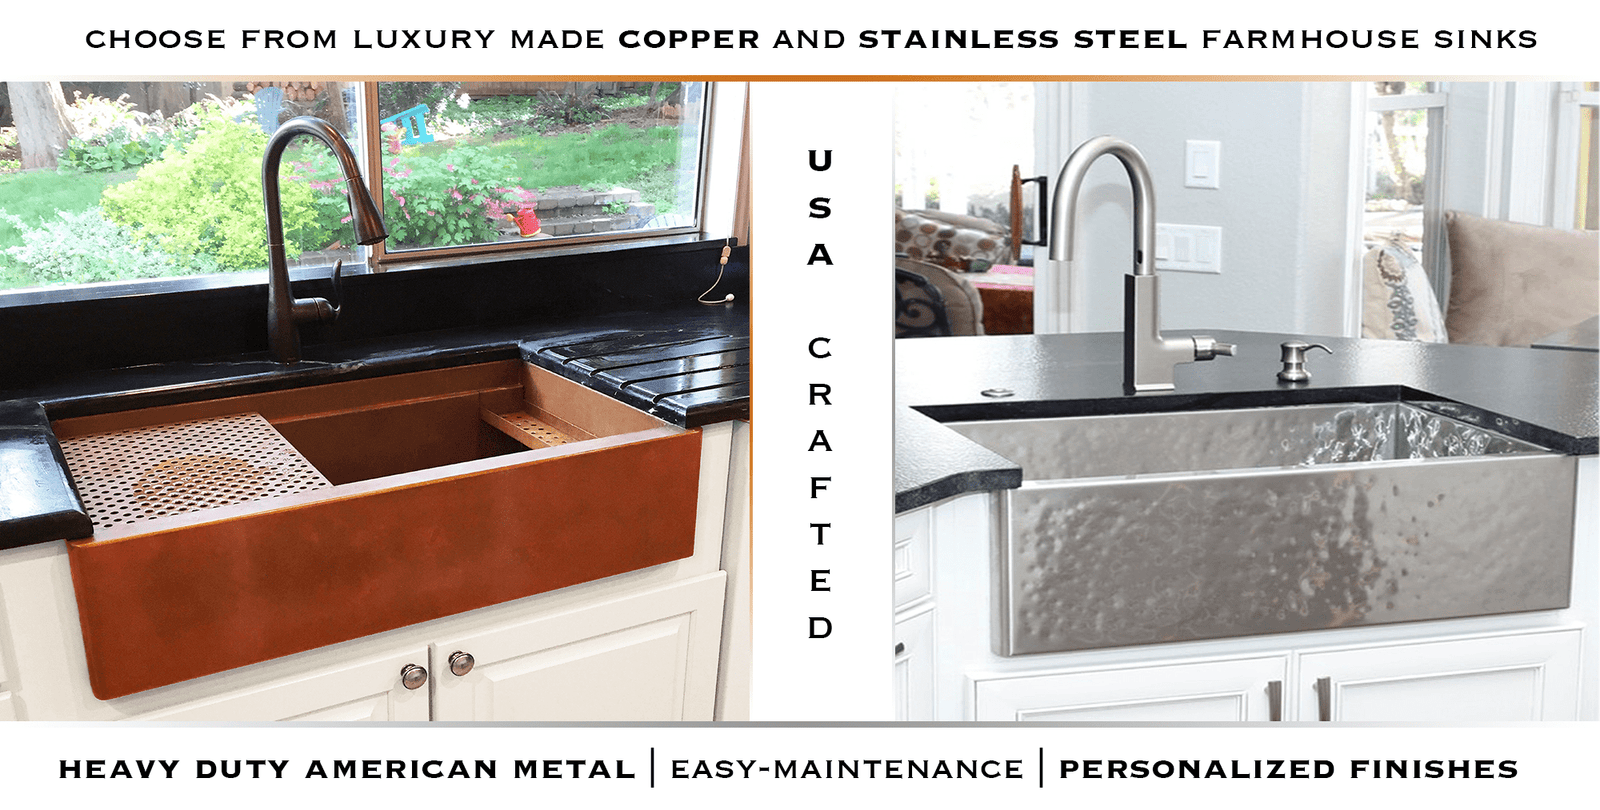 copper and stainless steel farmhouse sinks - havens metal